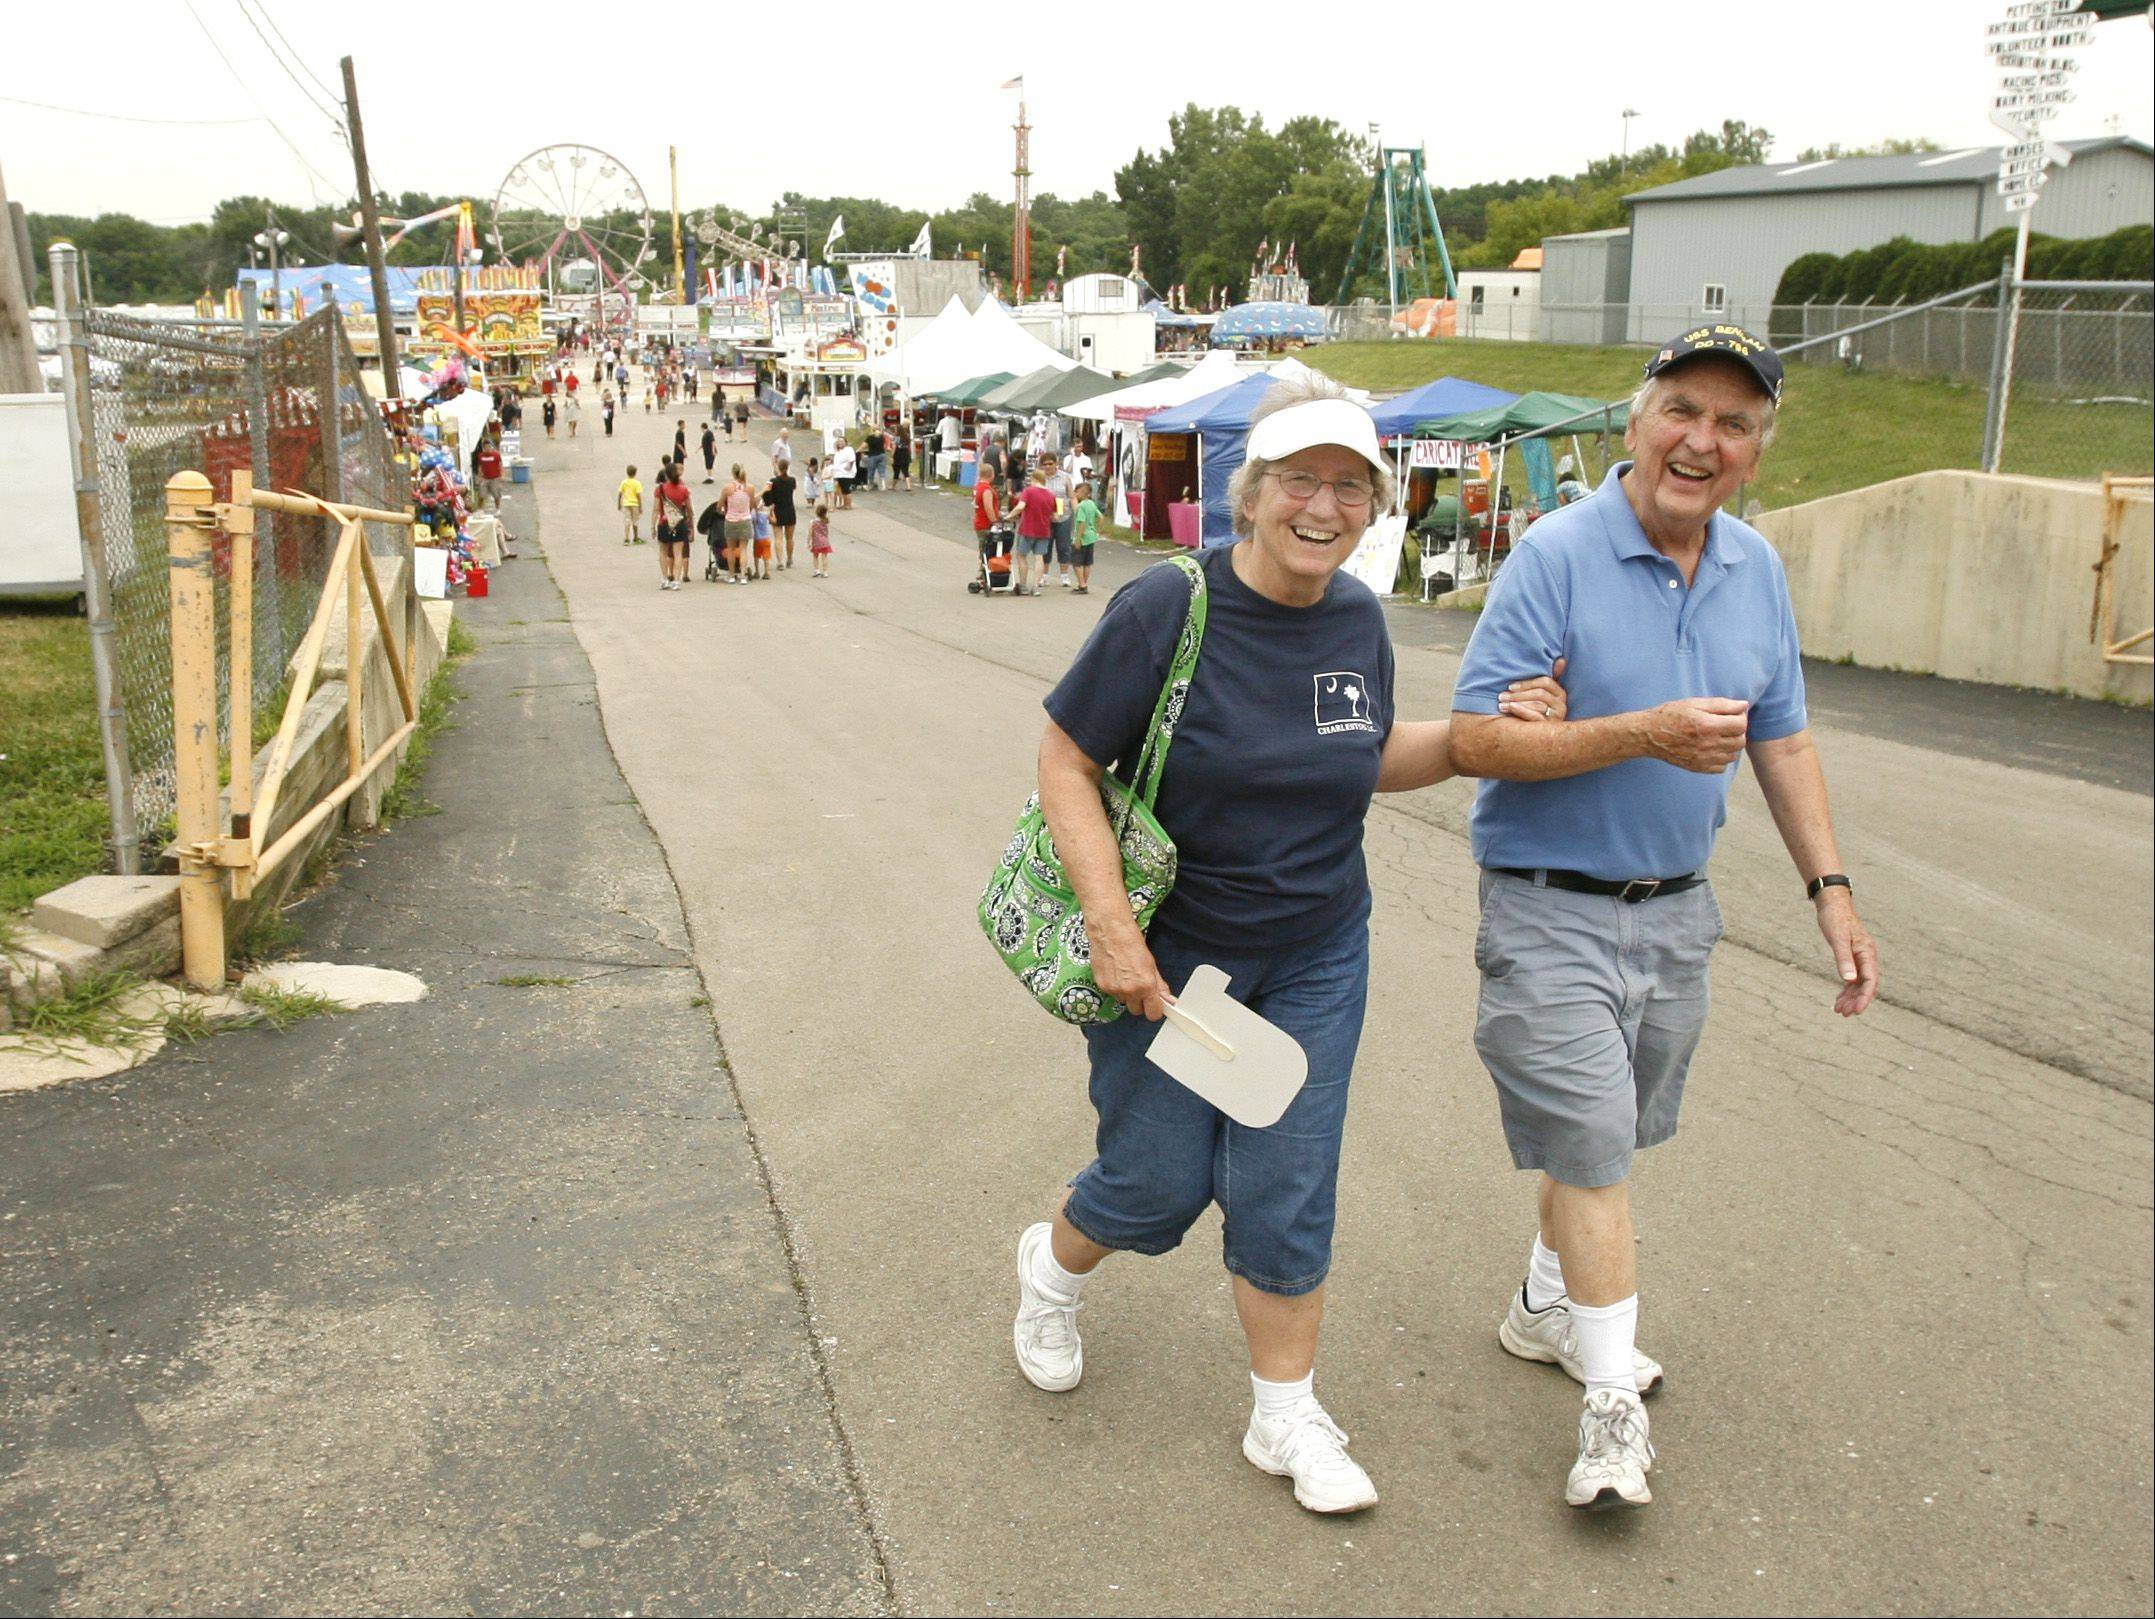 Mary and Marty Cosgrove of Winfield enjoy the first day of the DuPage County Fair.